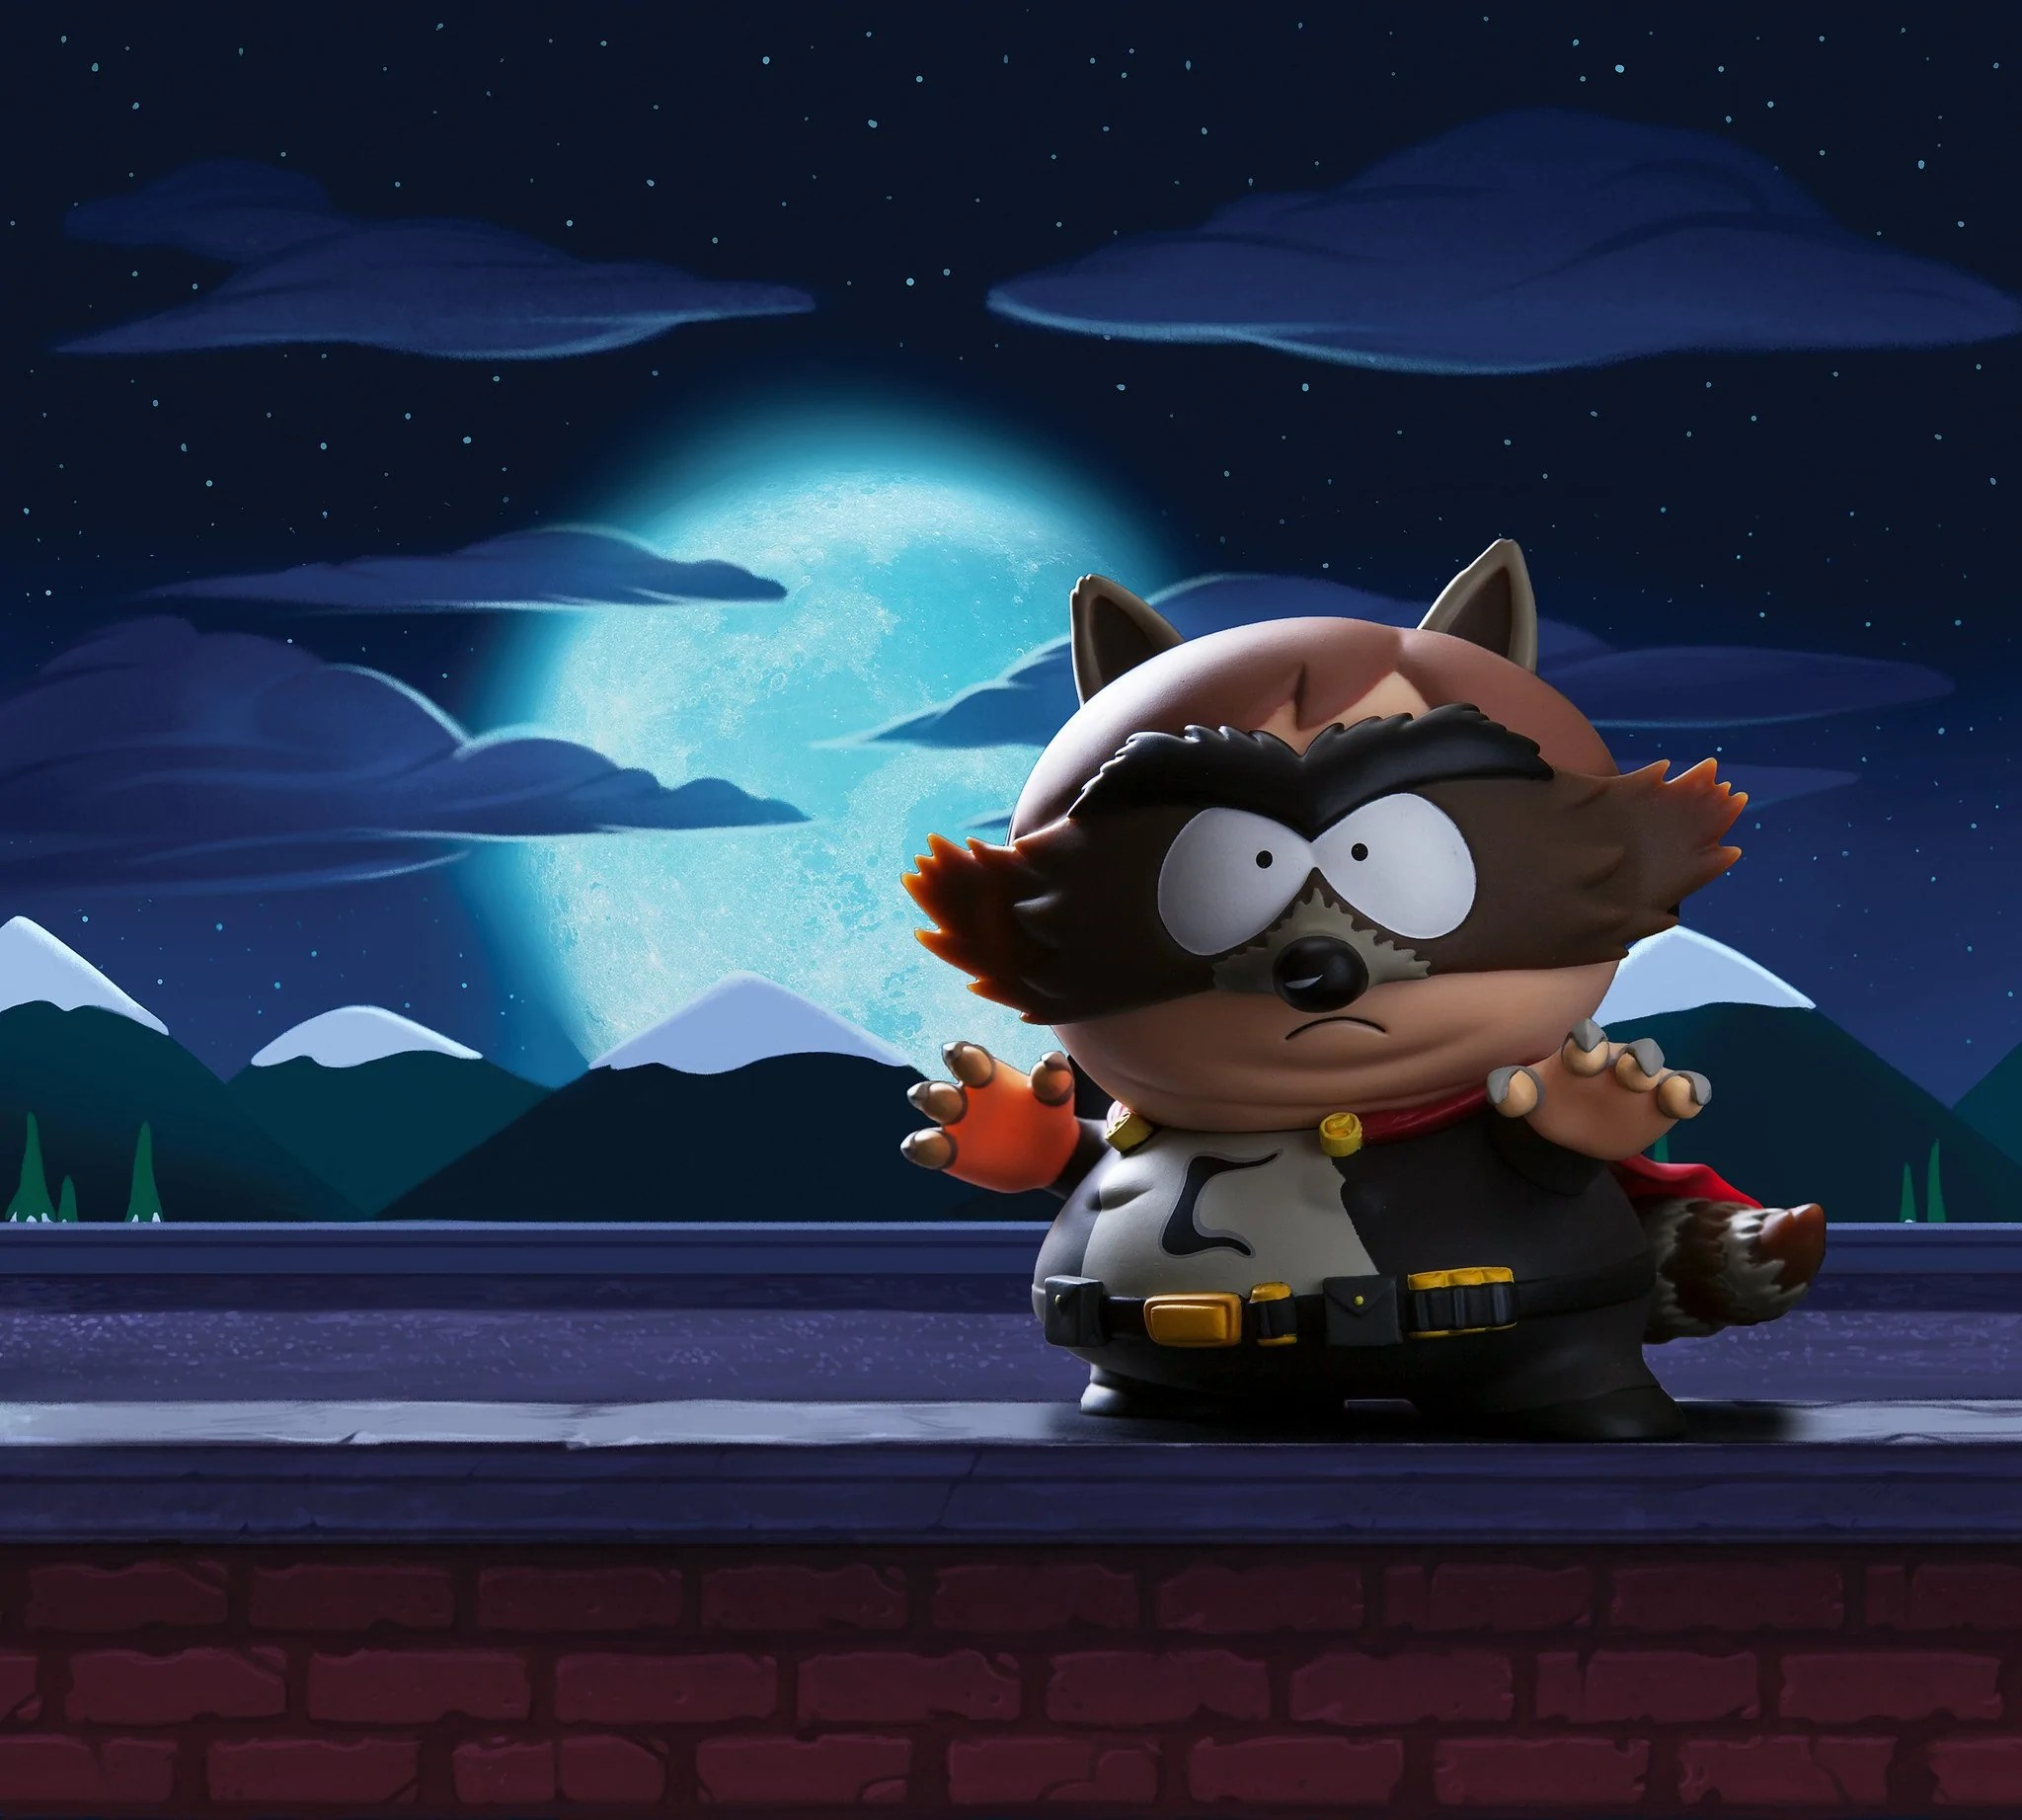 Wallpaper Superhero Marvel 3d South Park The Fractured But Whole The Coon 7 Quot Medium